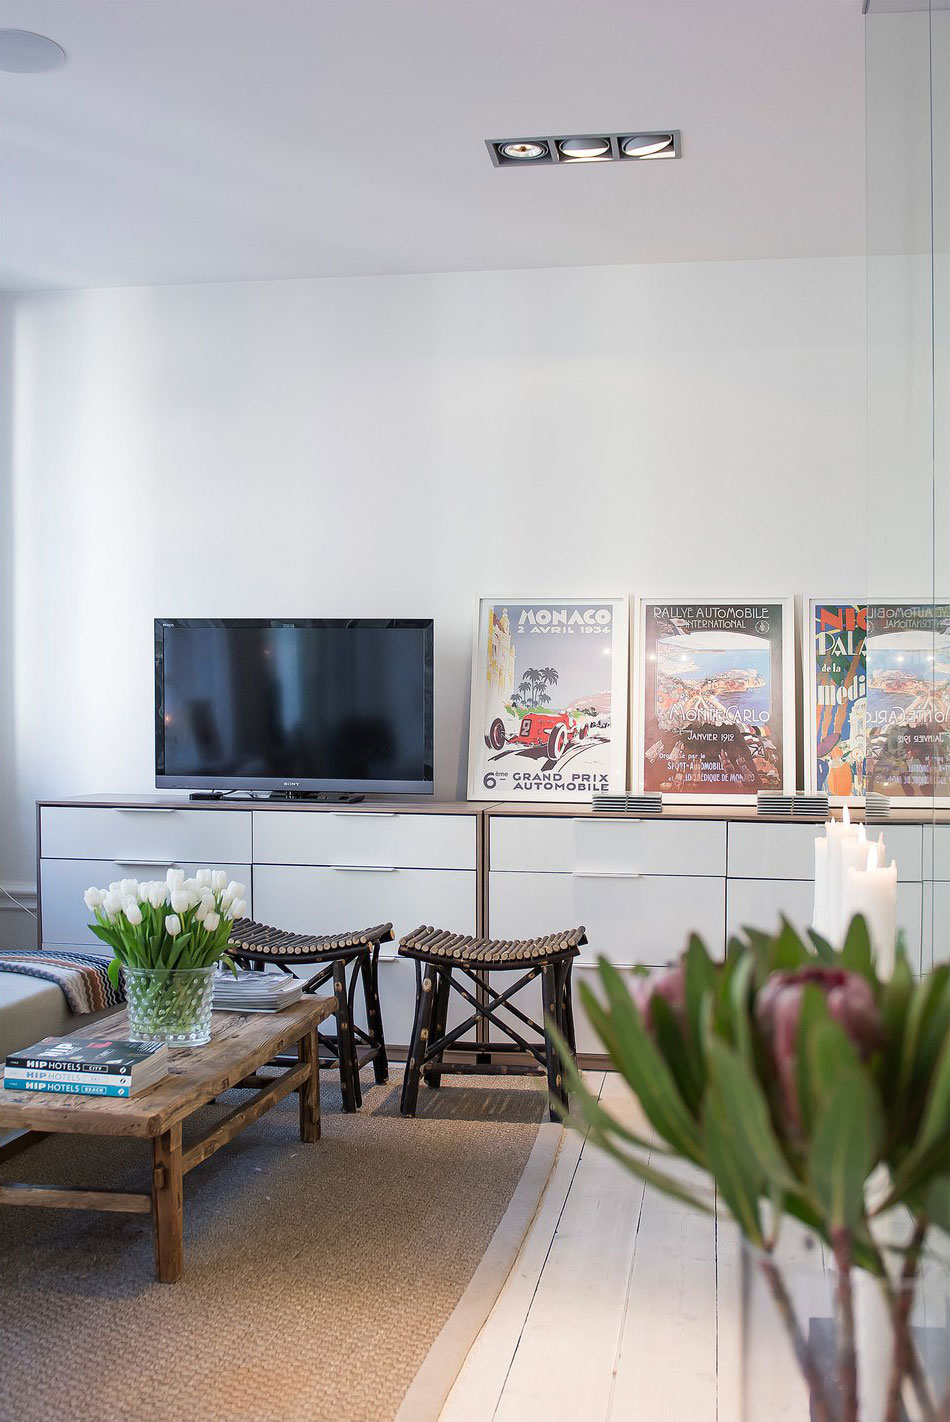 Posters, Living Room, Apartment in Östermalm, Stockholm